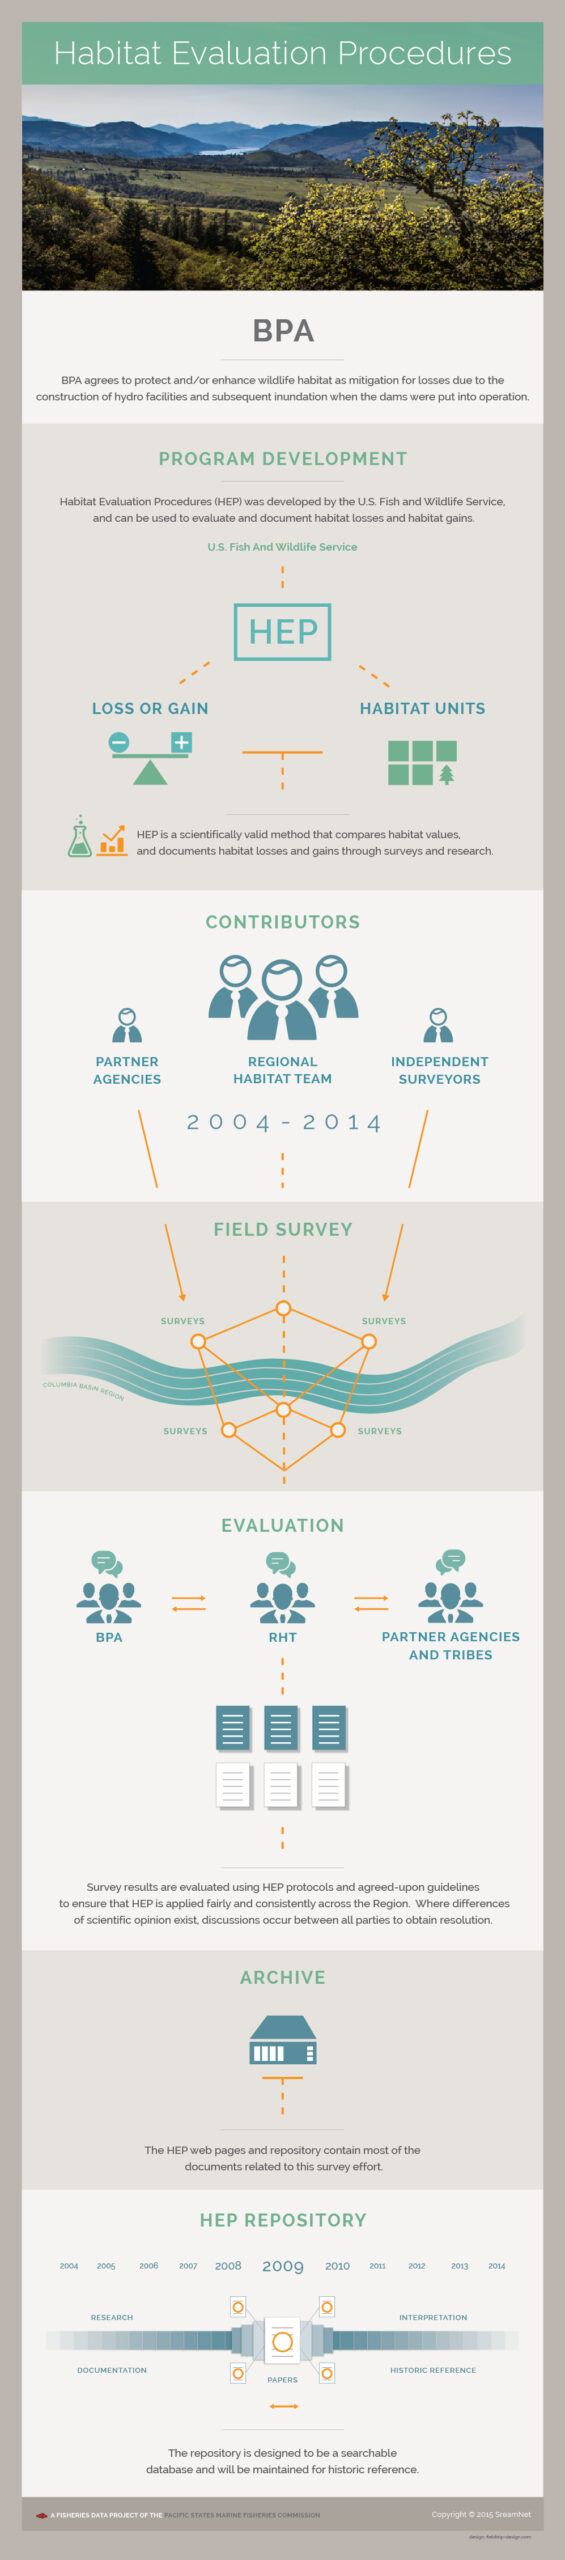 Infographic summarizing the HEP process to calculate habitat loss and archiving the data.